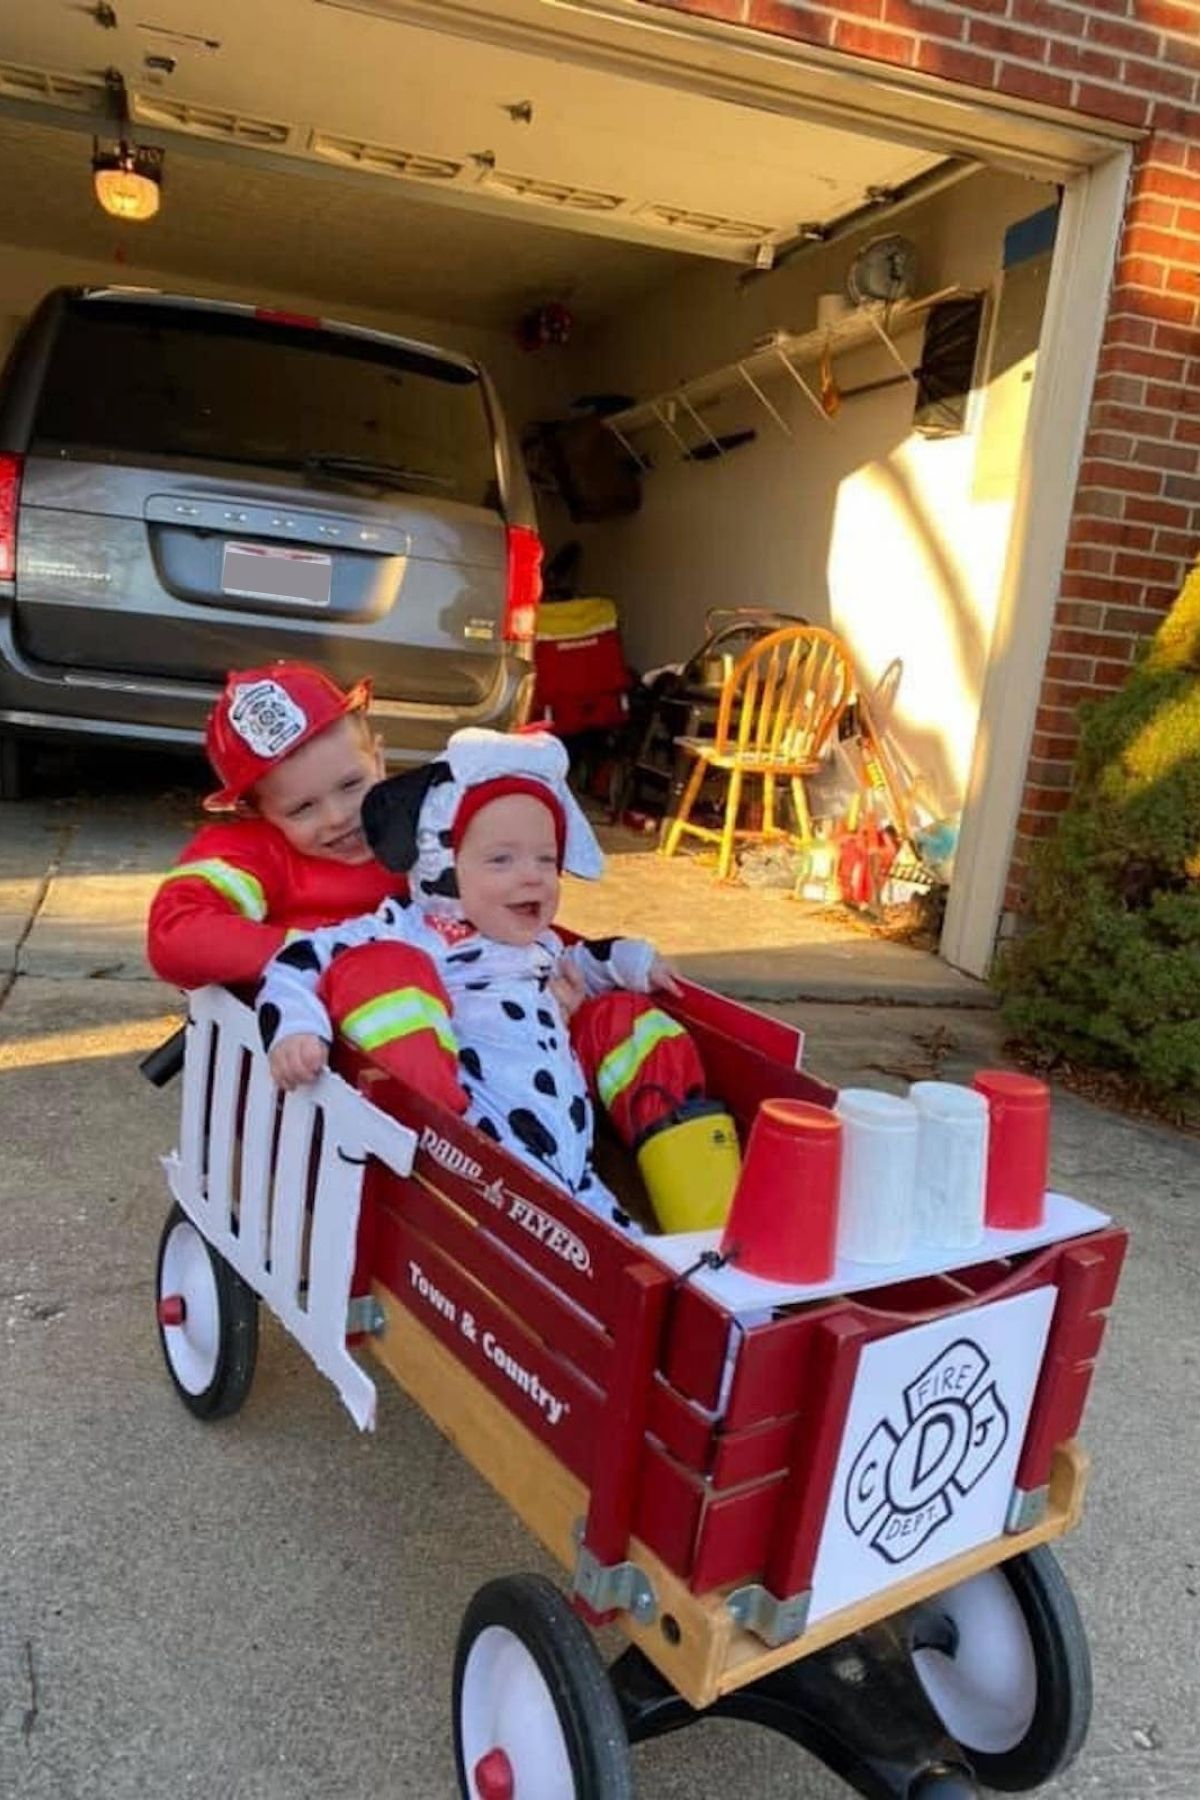 Boy dresses as fireman and baby dressed as dalmatian sit in DIY wagon firetruck.